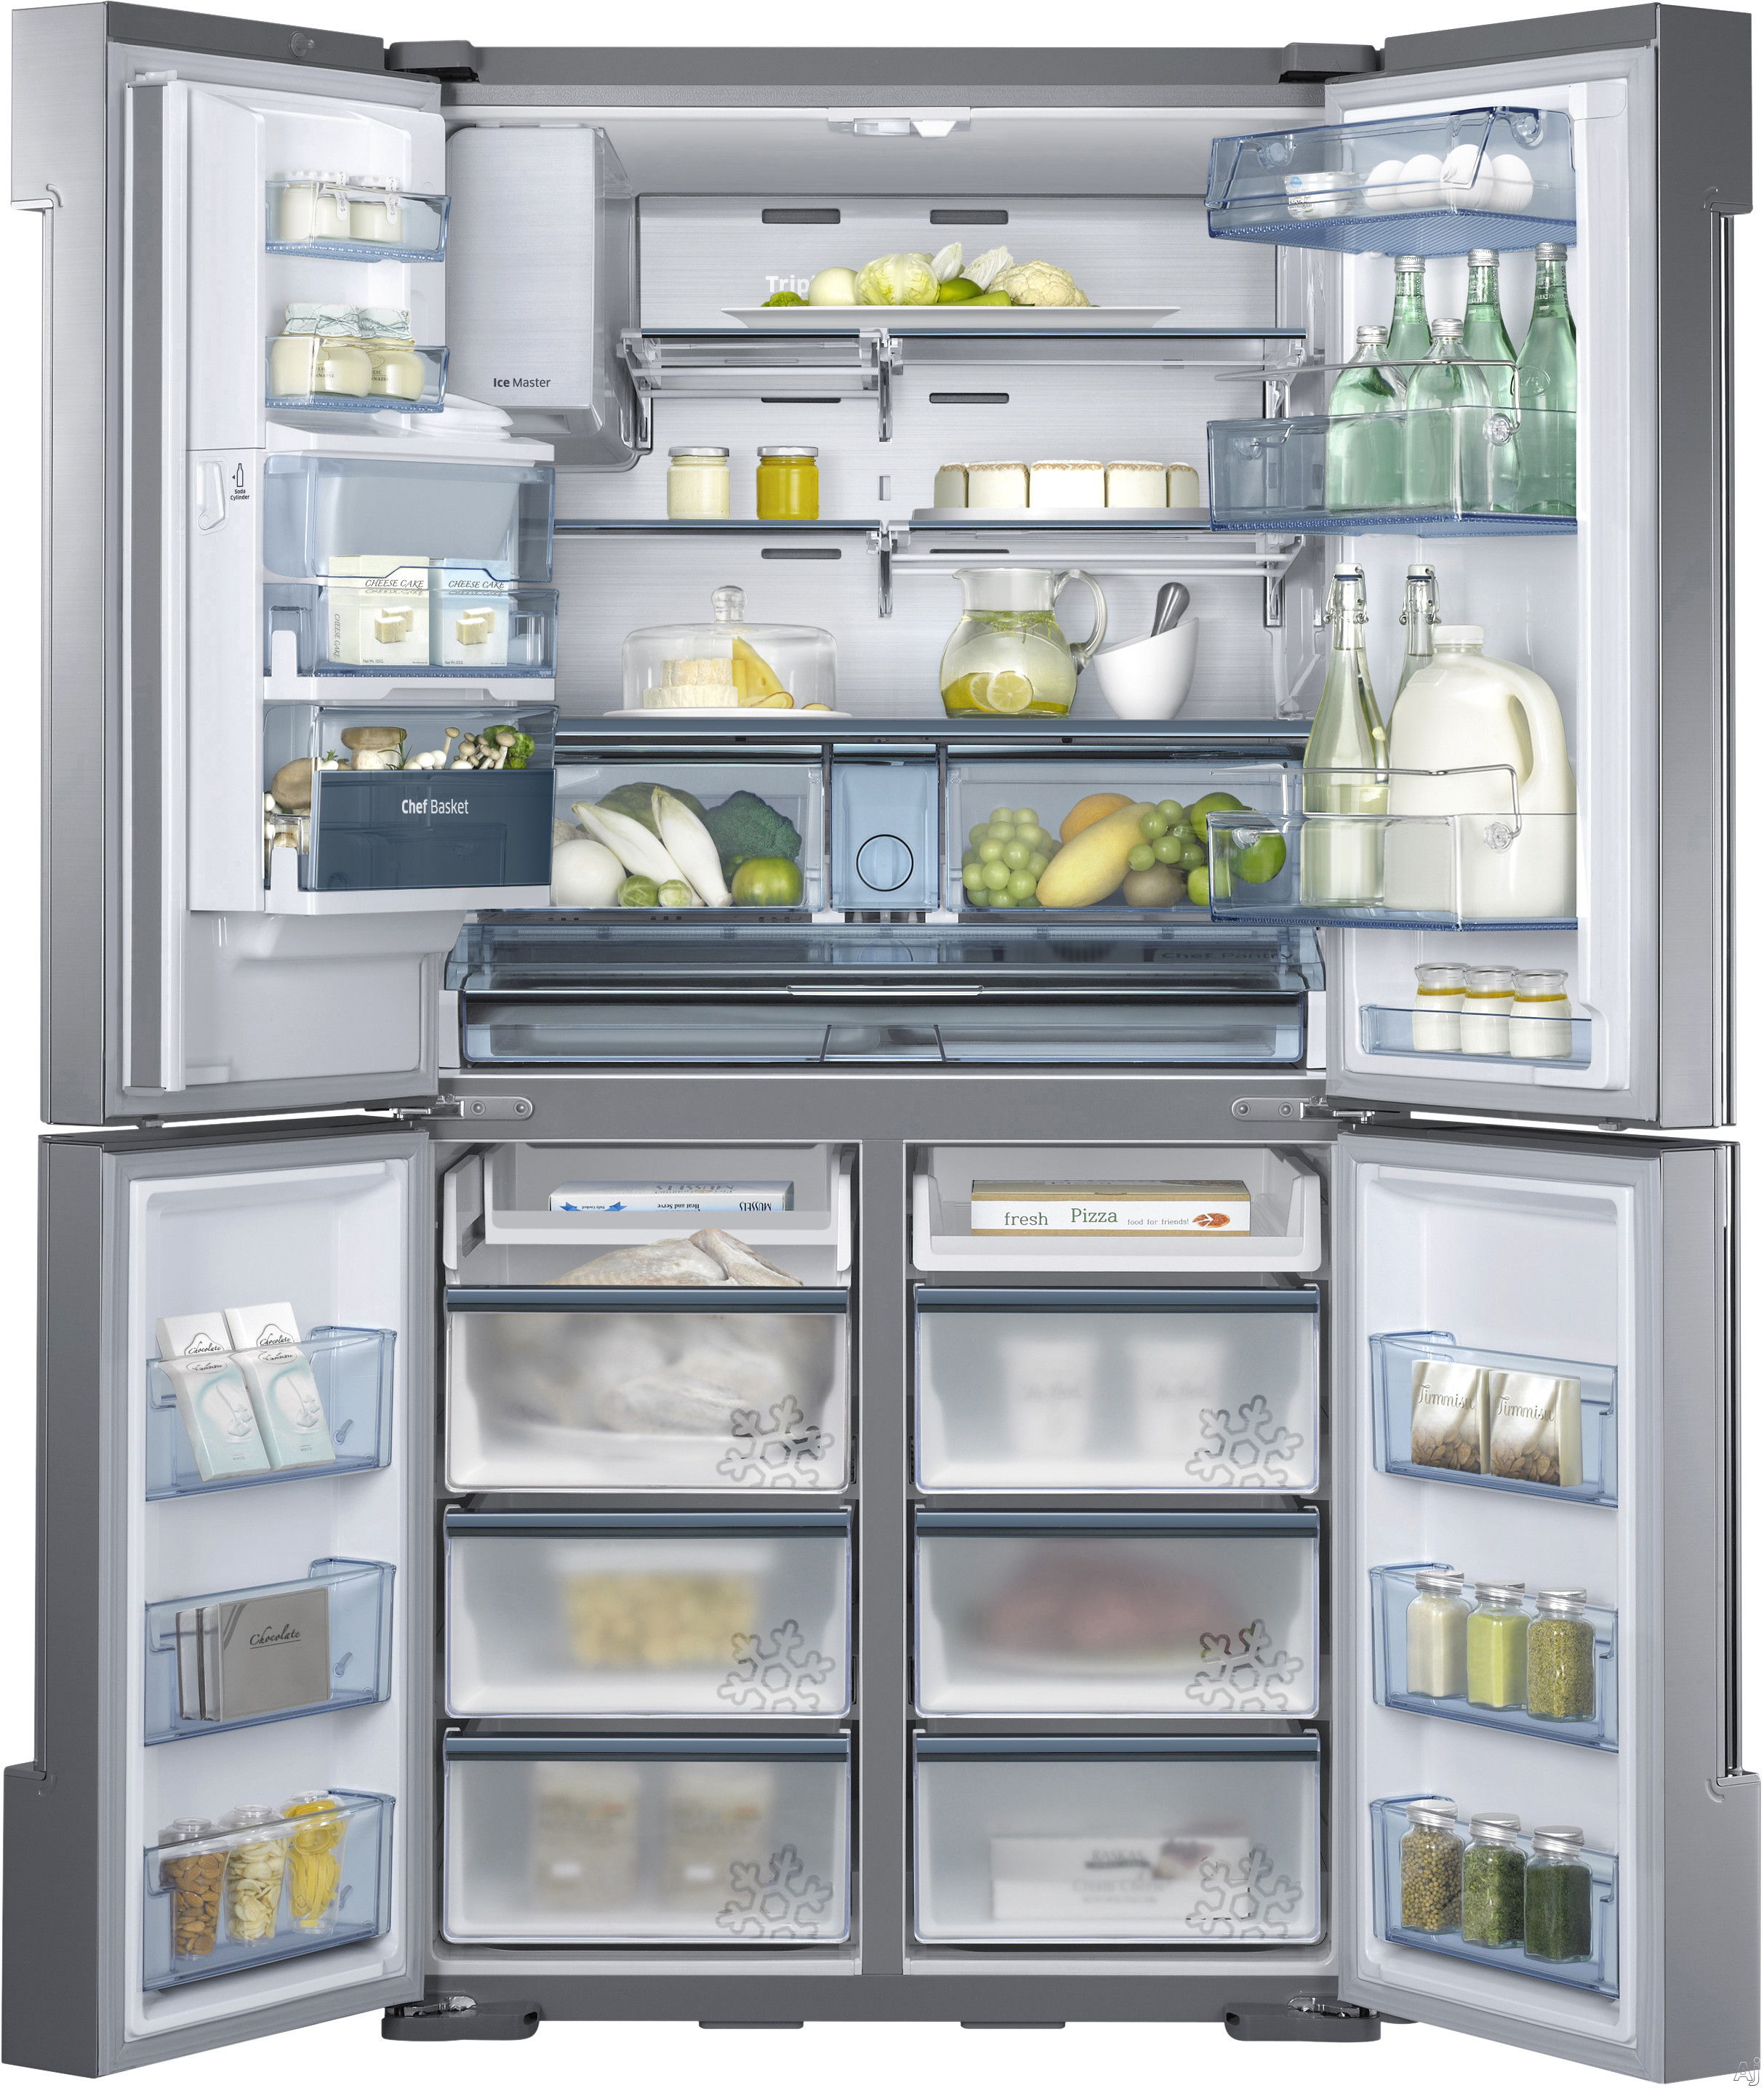 Image disclaimer - Glass door refrigerator freezer ...